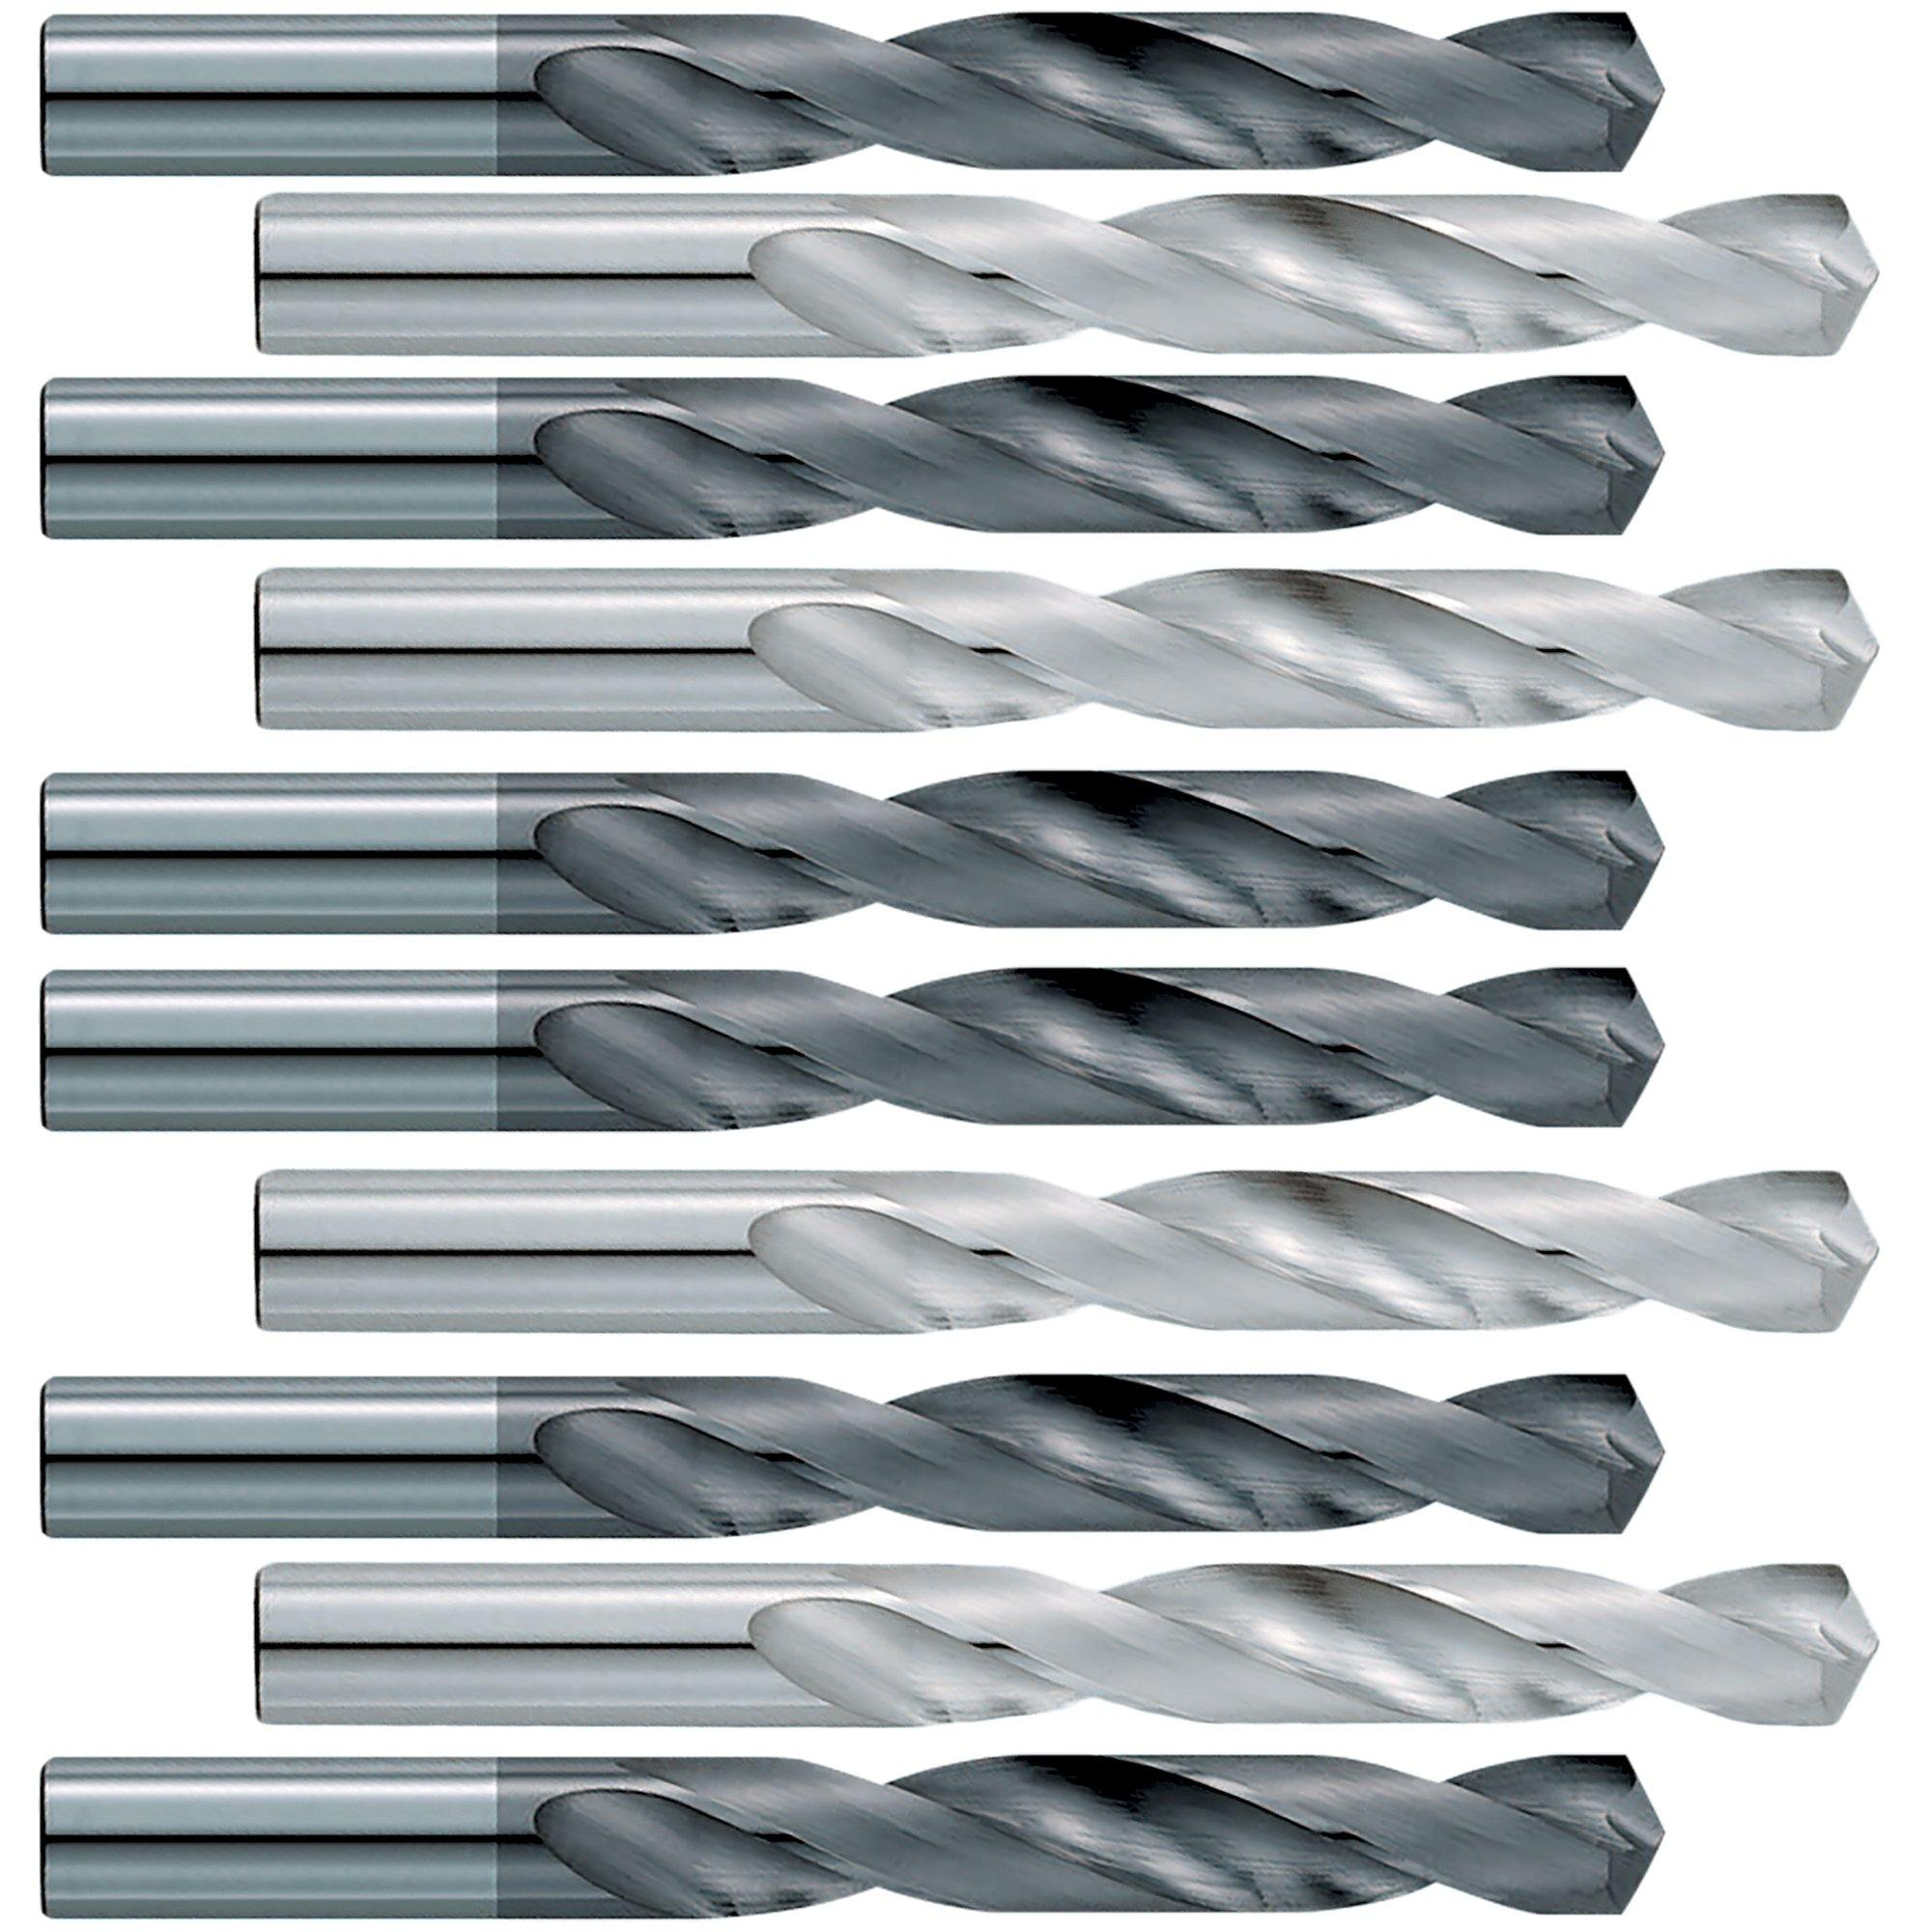 "(10 Pack) 3/8"" Dia. x 2-3/4"" LOF x  4-1/4"" OAL Carbide Drill Bits - End Mill Store"